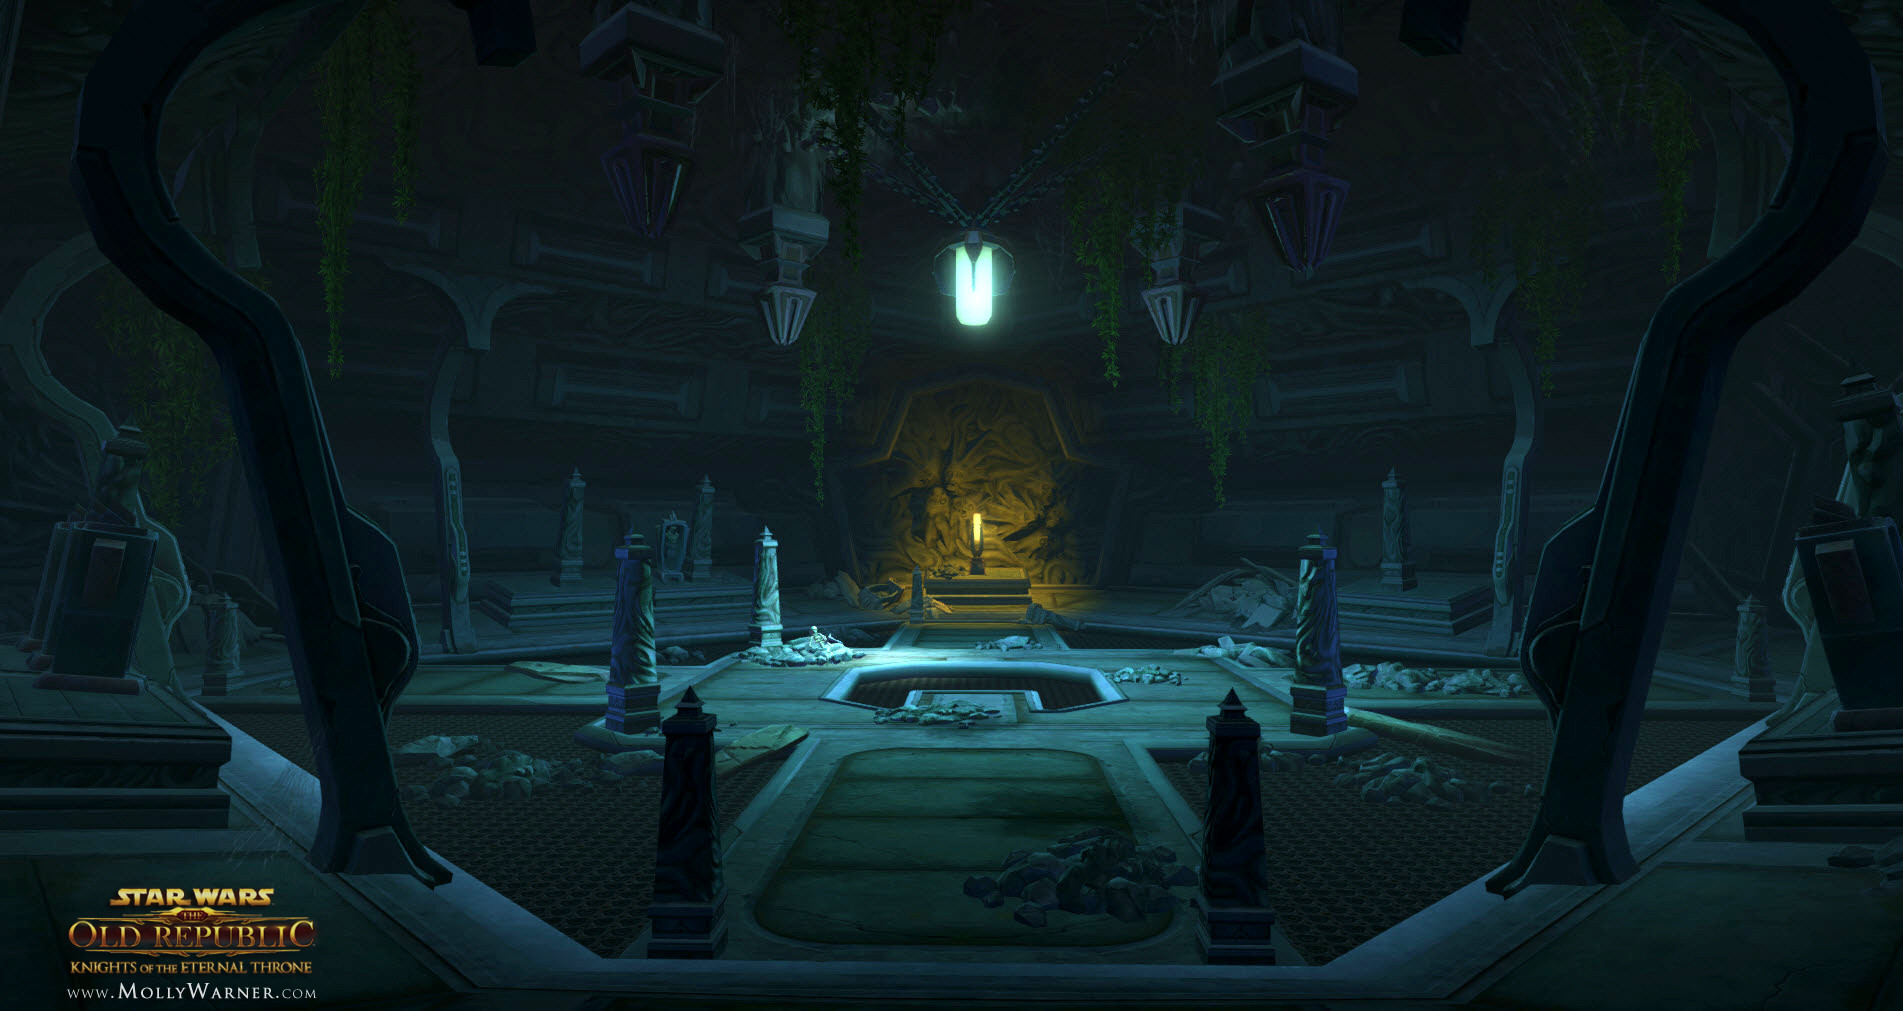 Sith Temple Catacombs (Boss fight area)